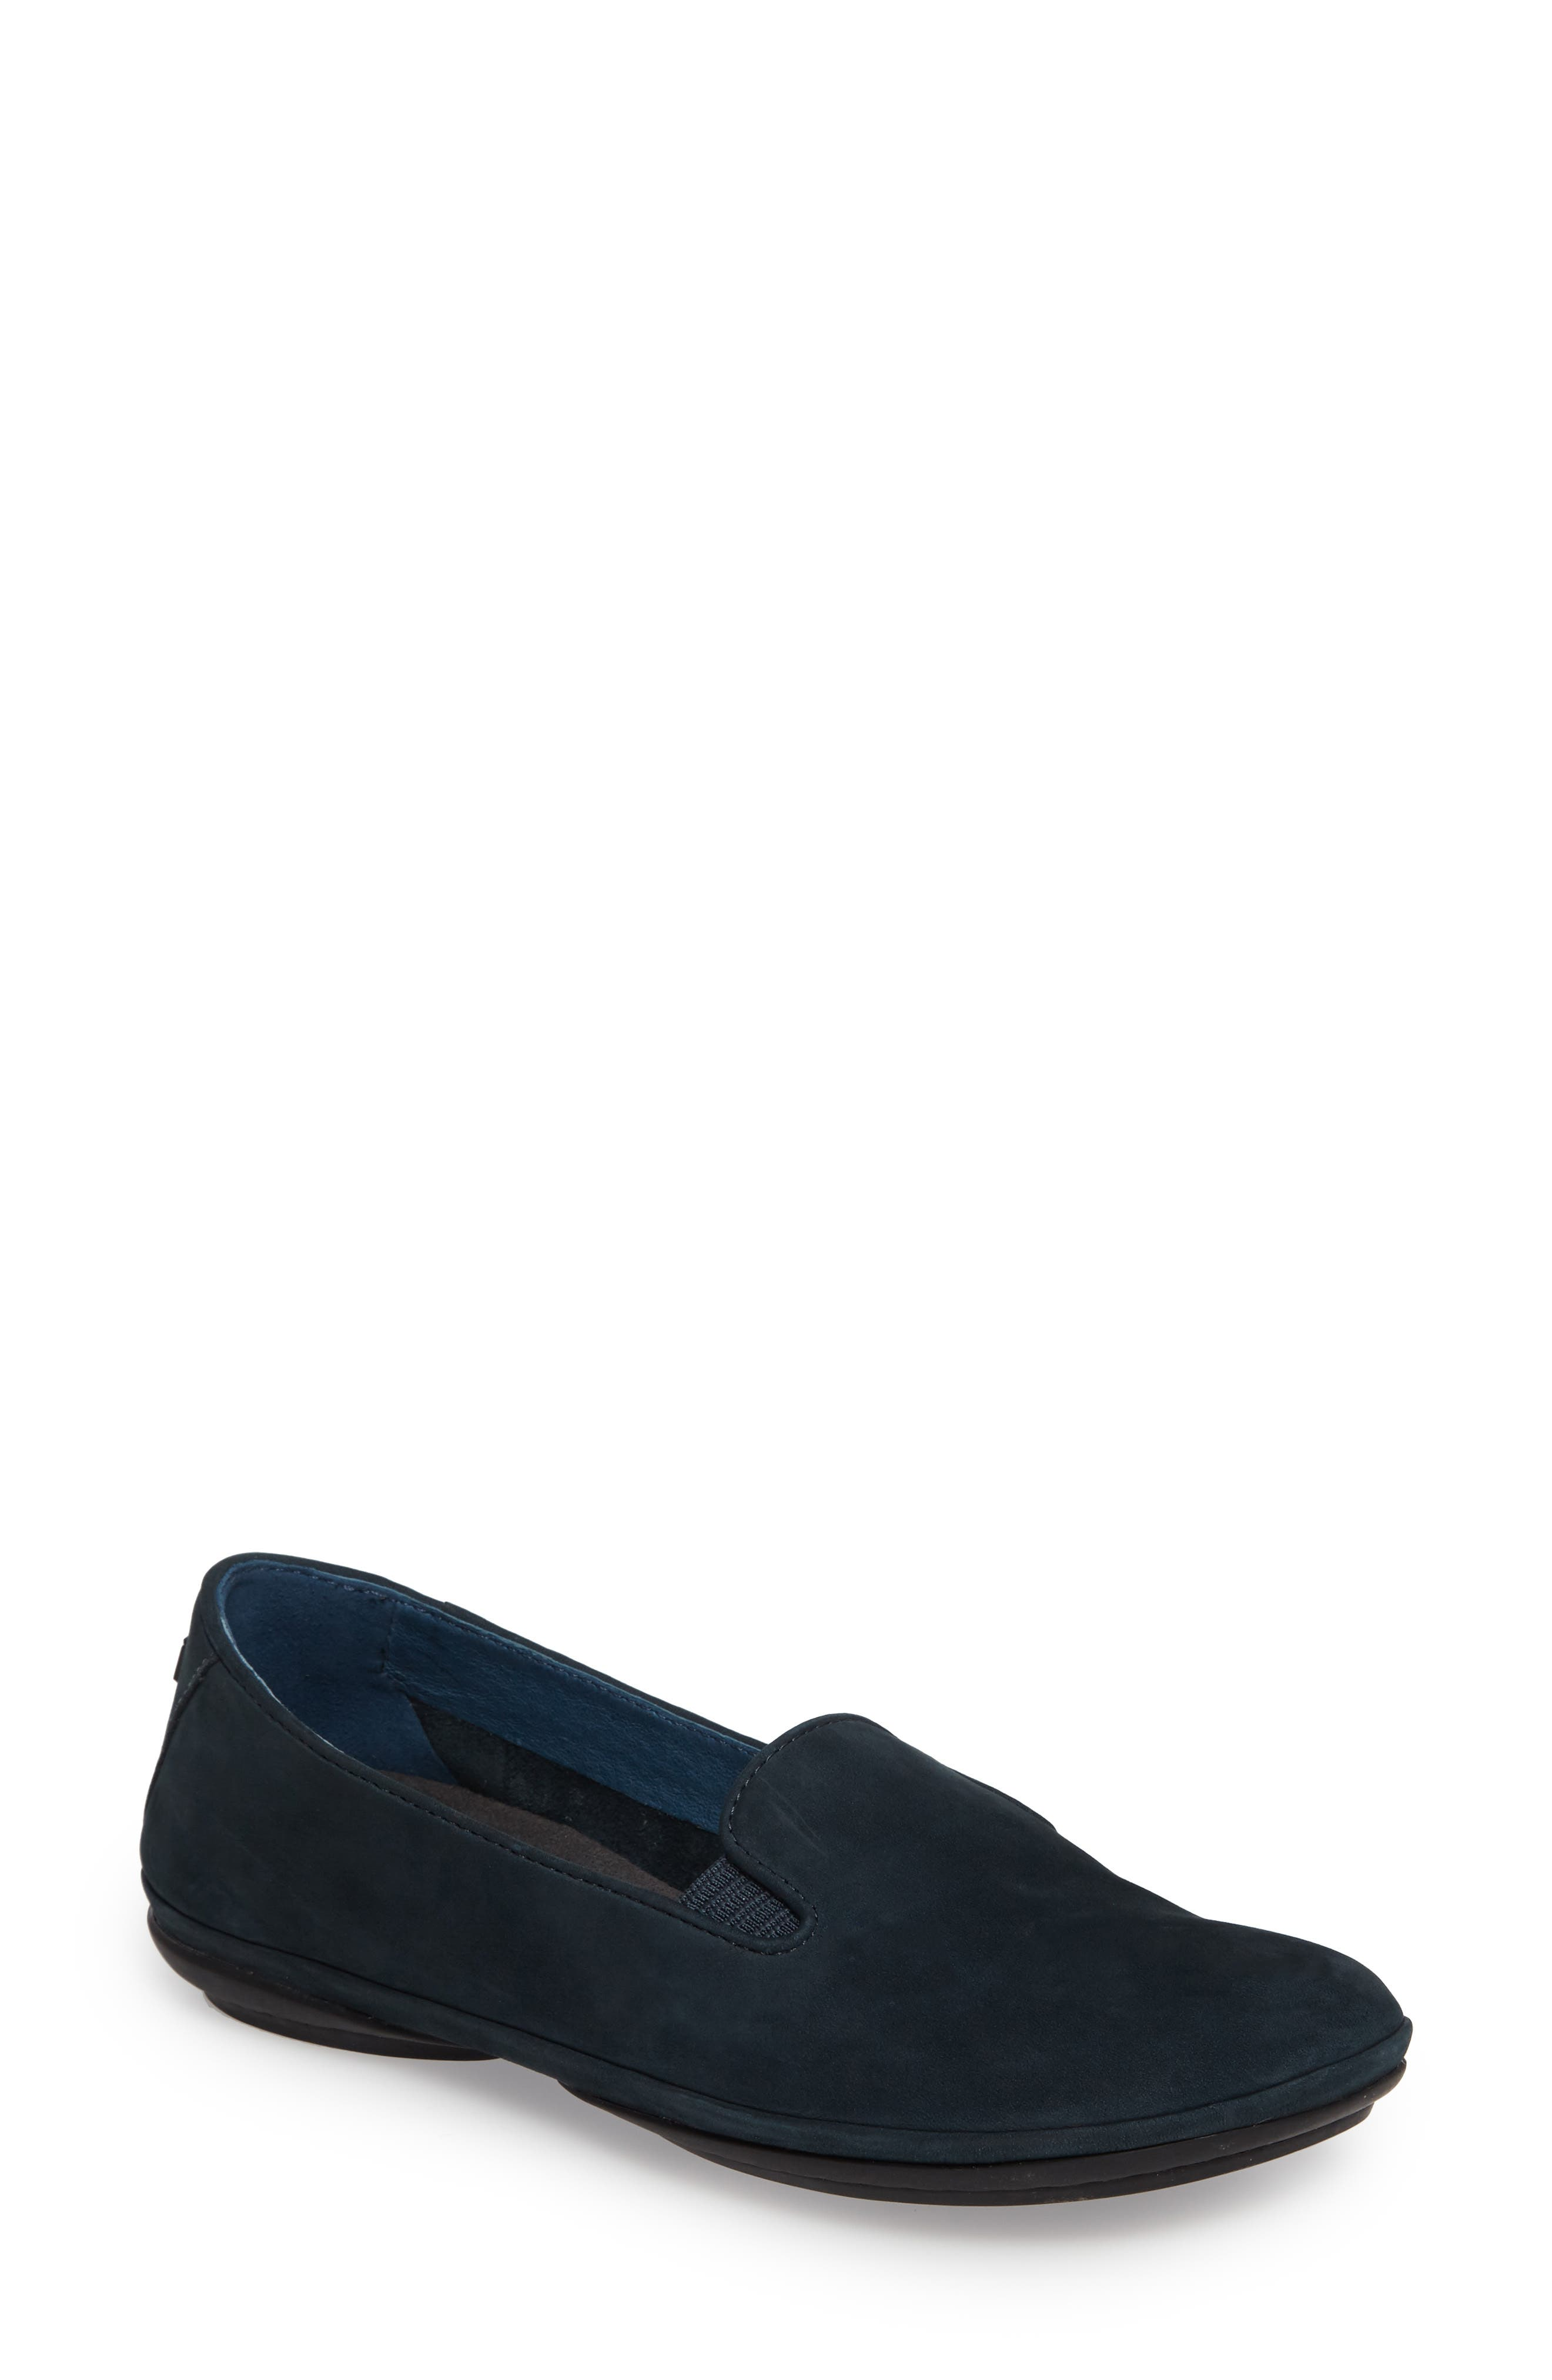 'Right Nina' Leather Flat,                         Main,                         color, Dark Blue Leather